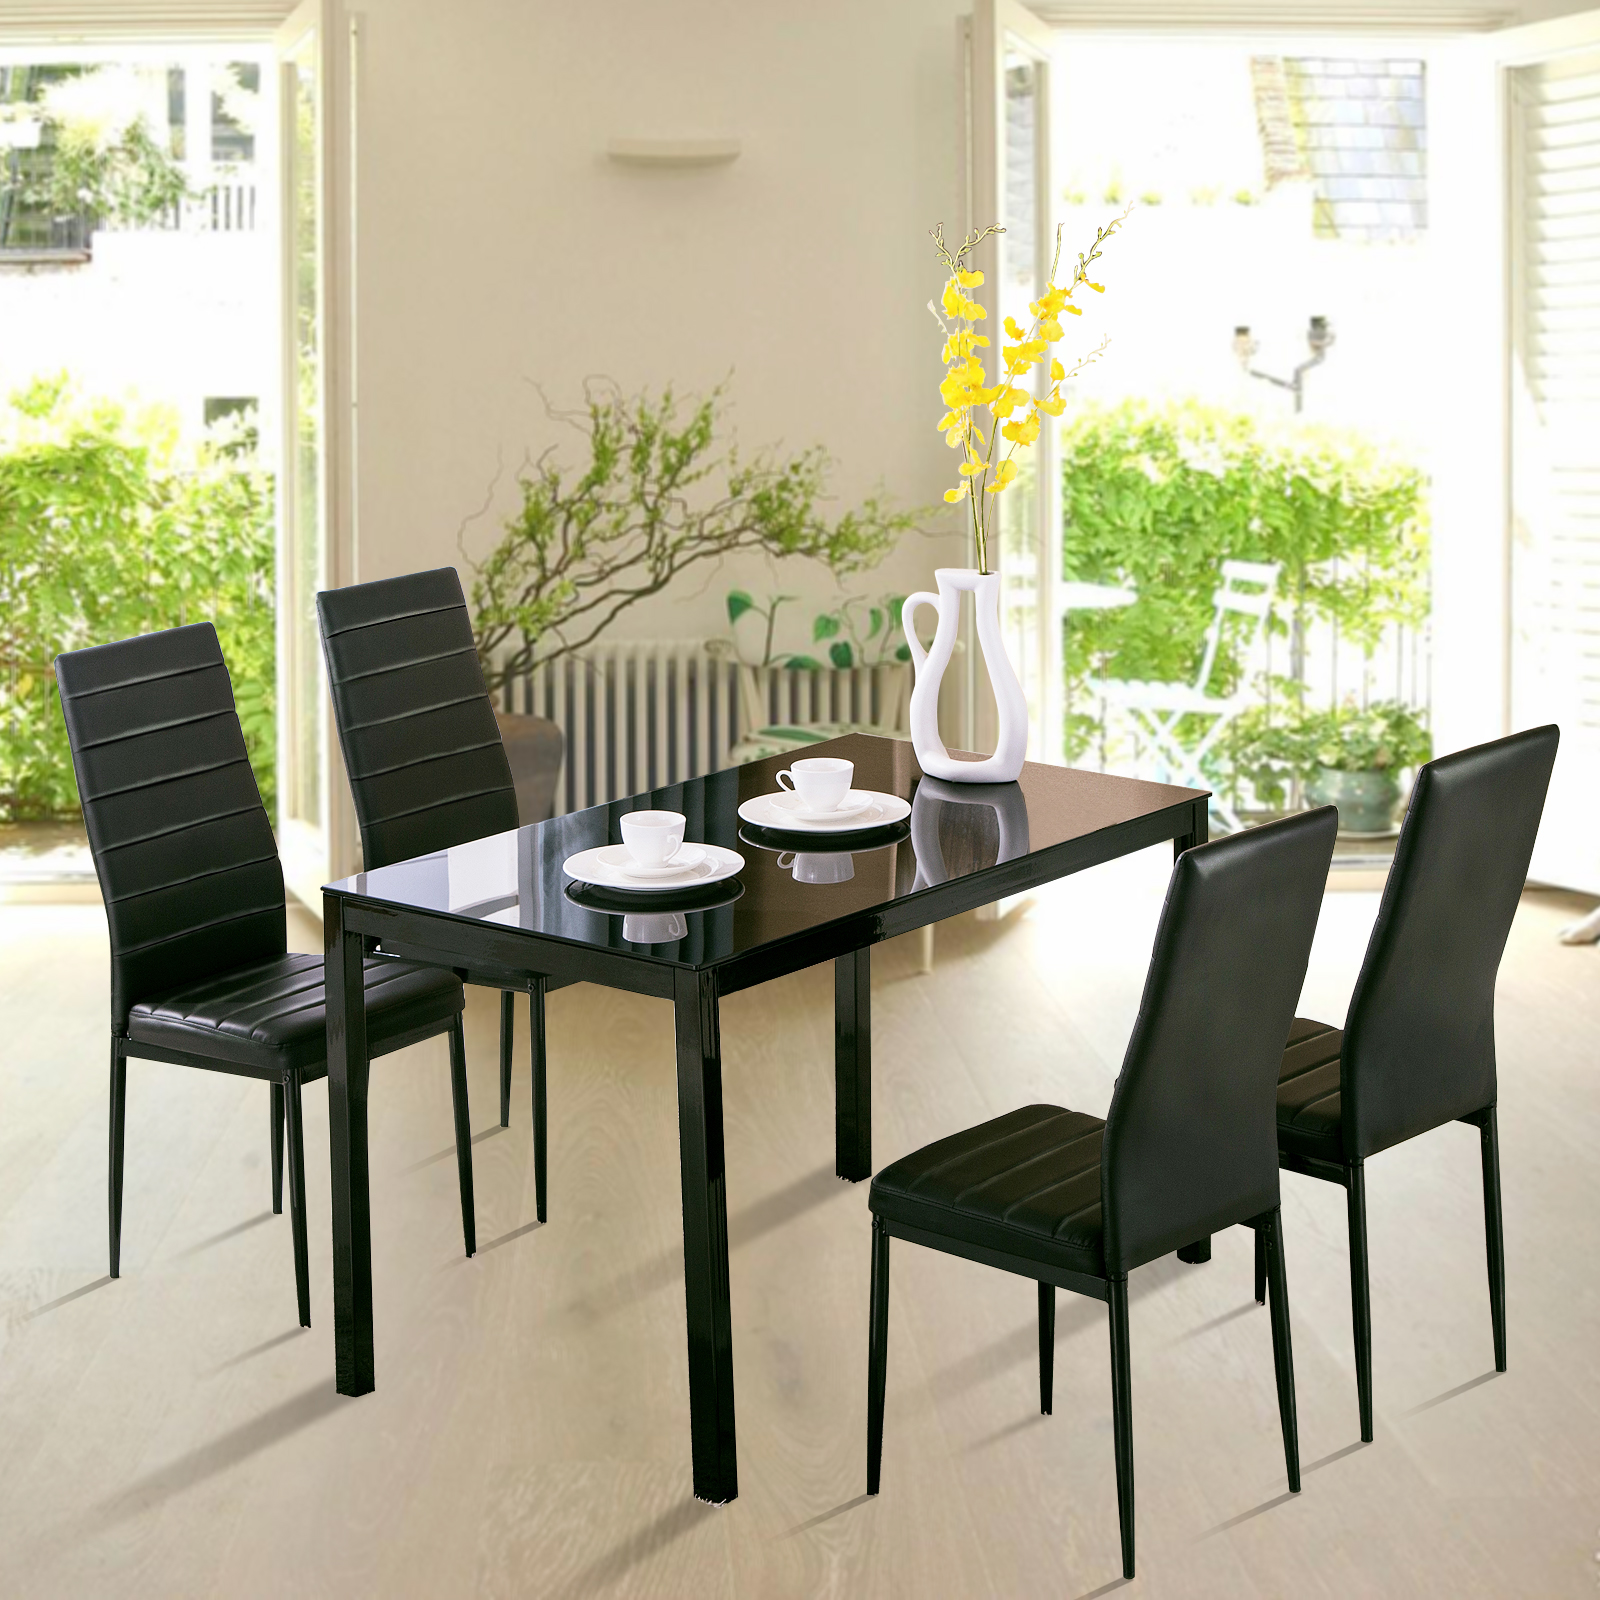 5 Piece Dining Table Set 4 Chairs Glass Metal Kitchen Room Breakfast Furnitur